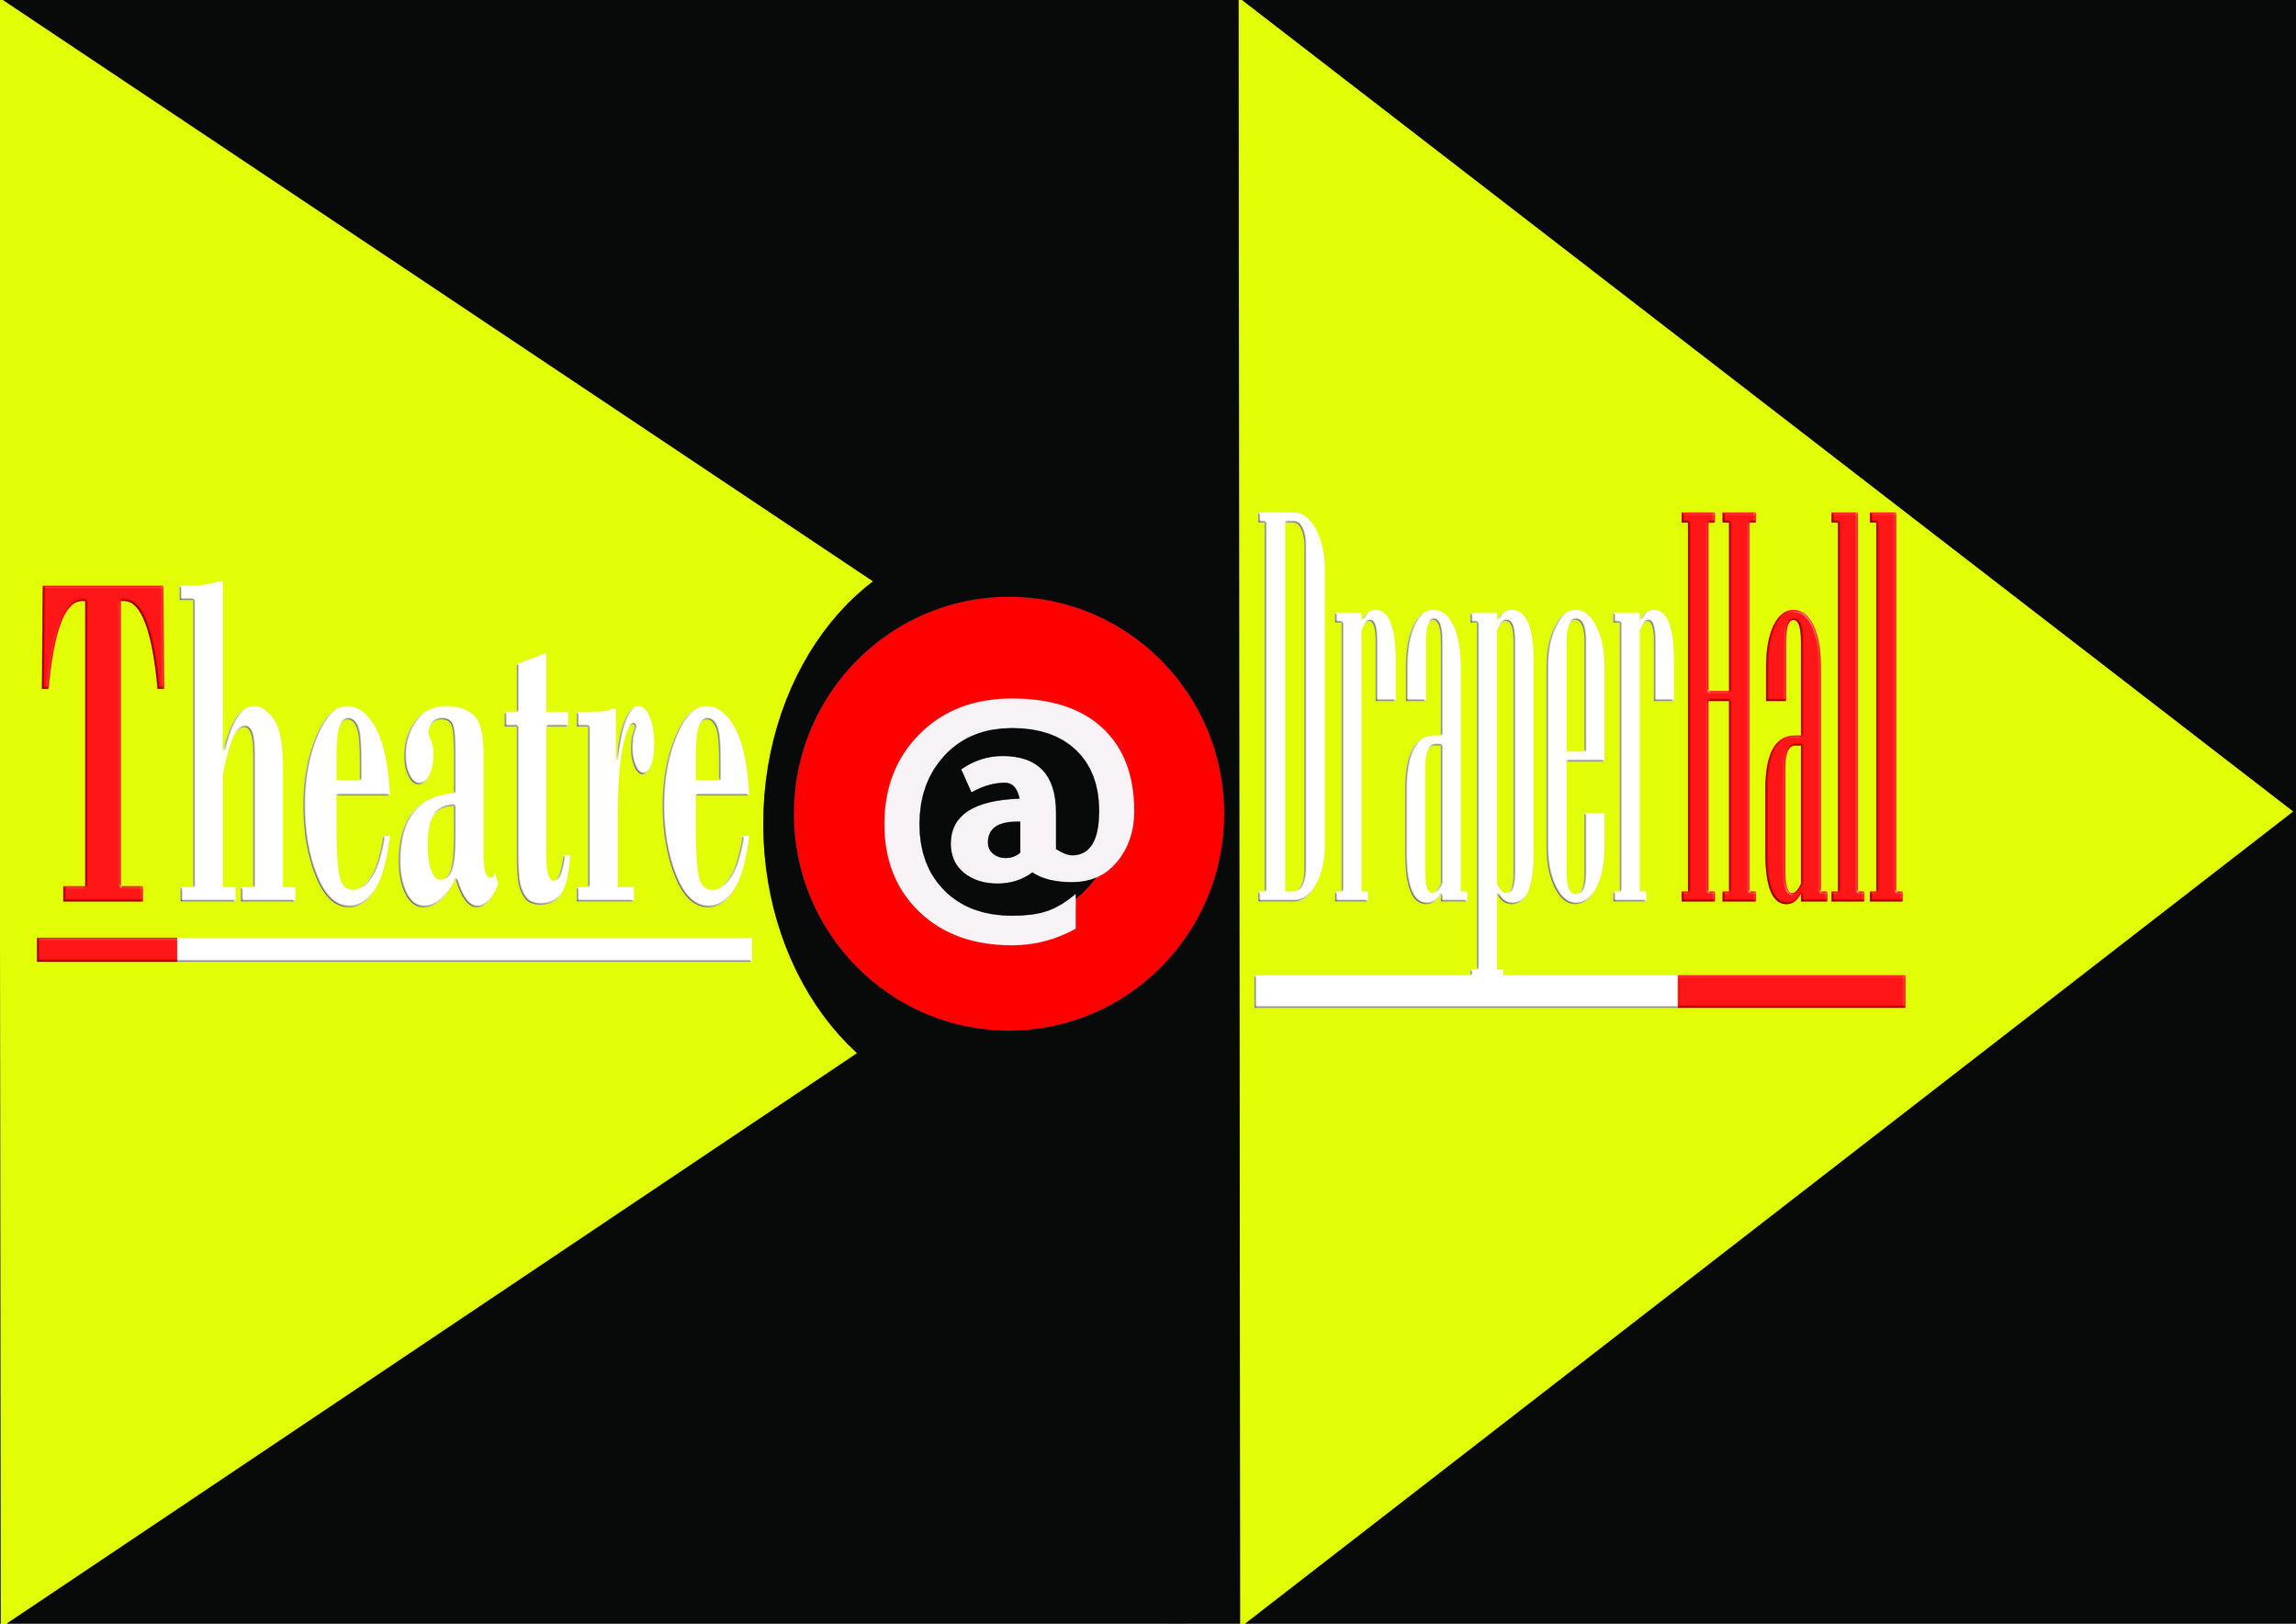 logo theatre at draperhall 3.jpg